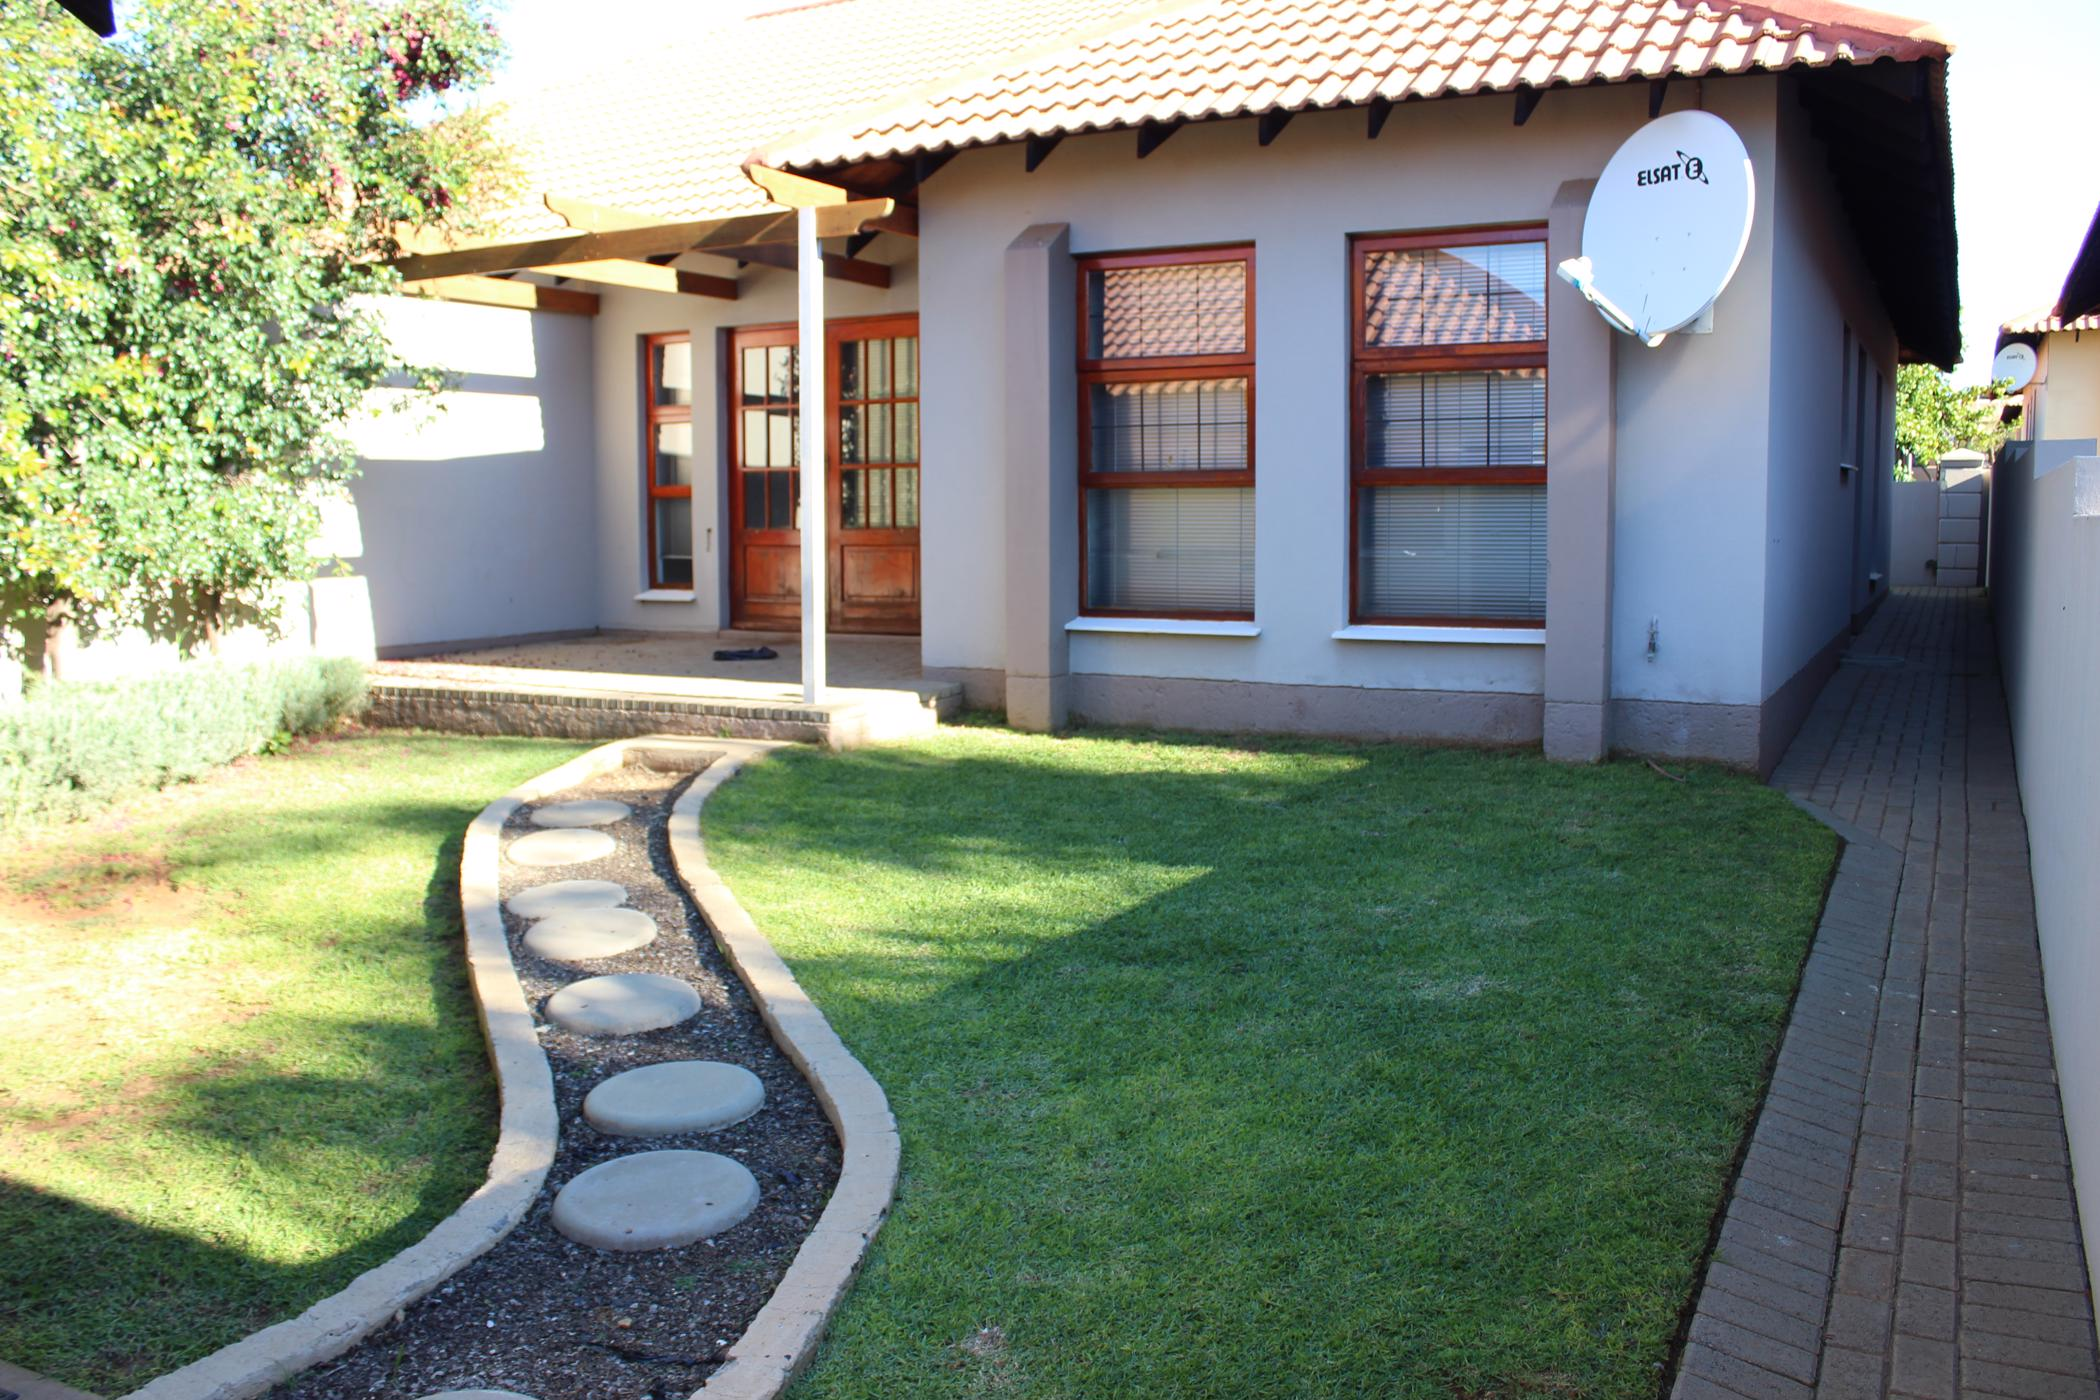 https://listing.pamgolding.co.za/images/properties/201904/1331324/H/1331324_H_3.jpg